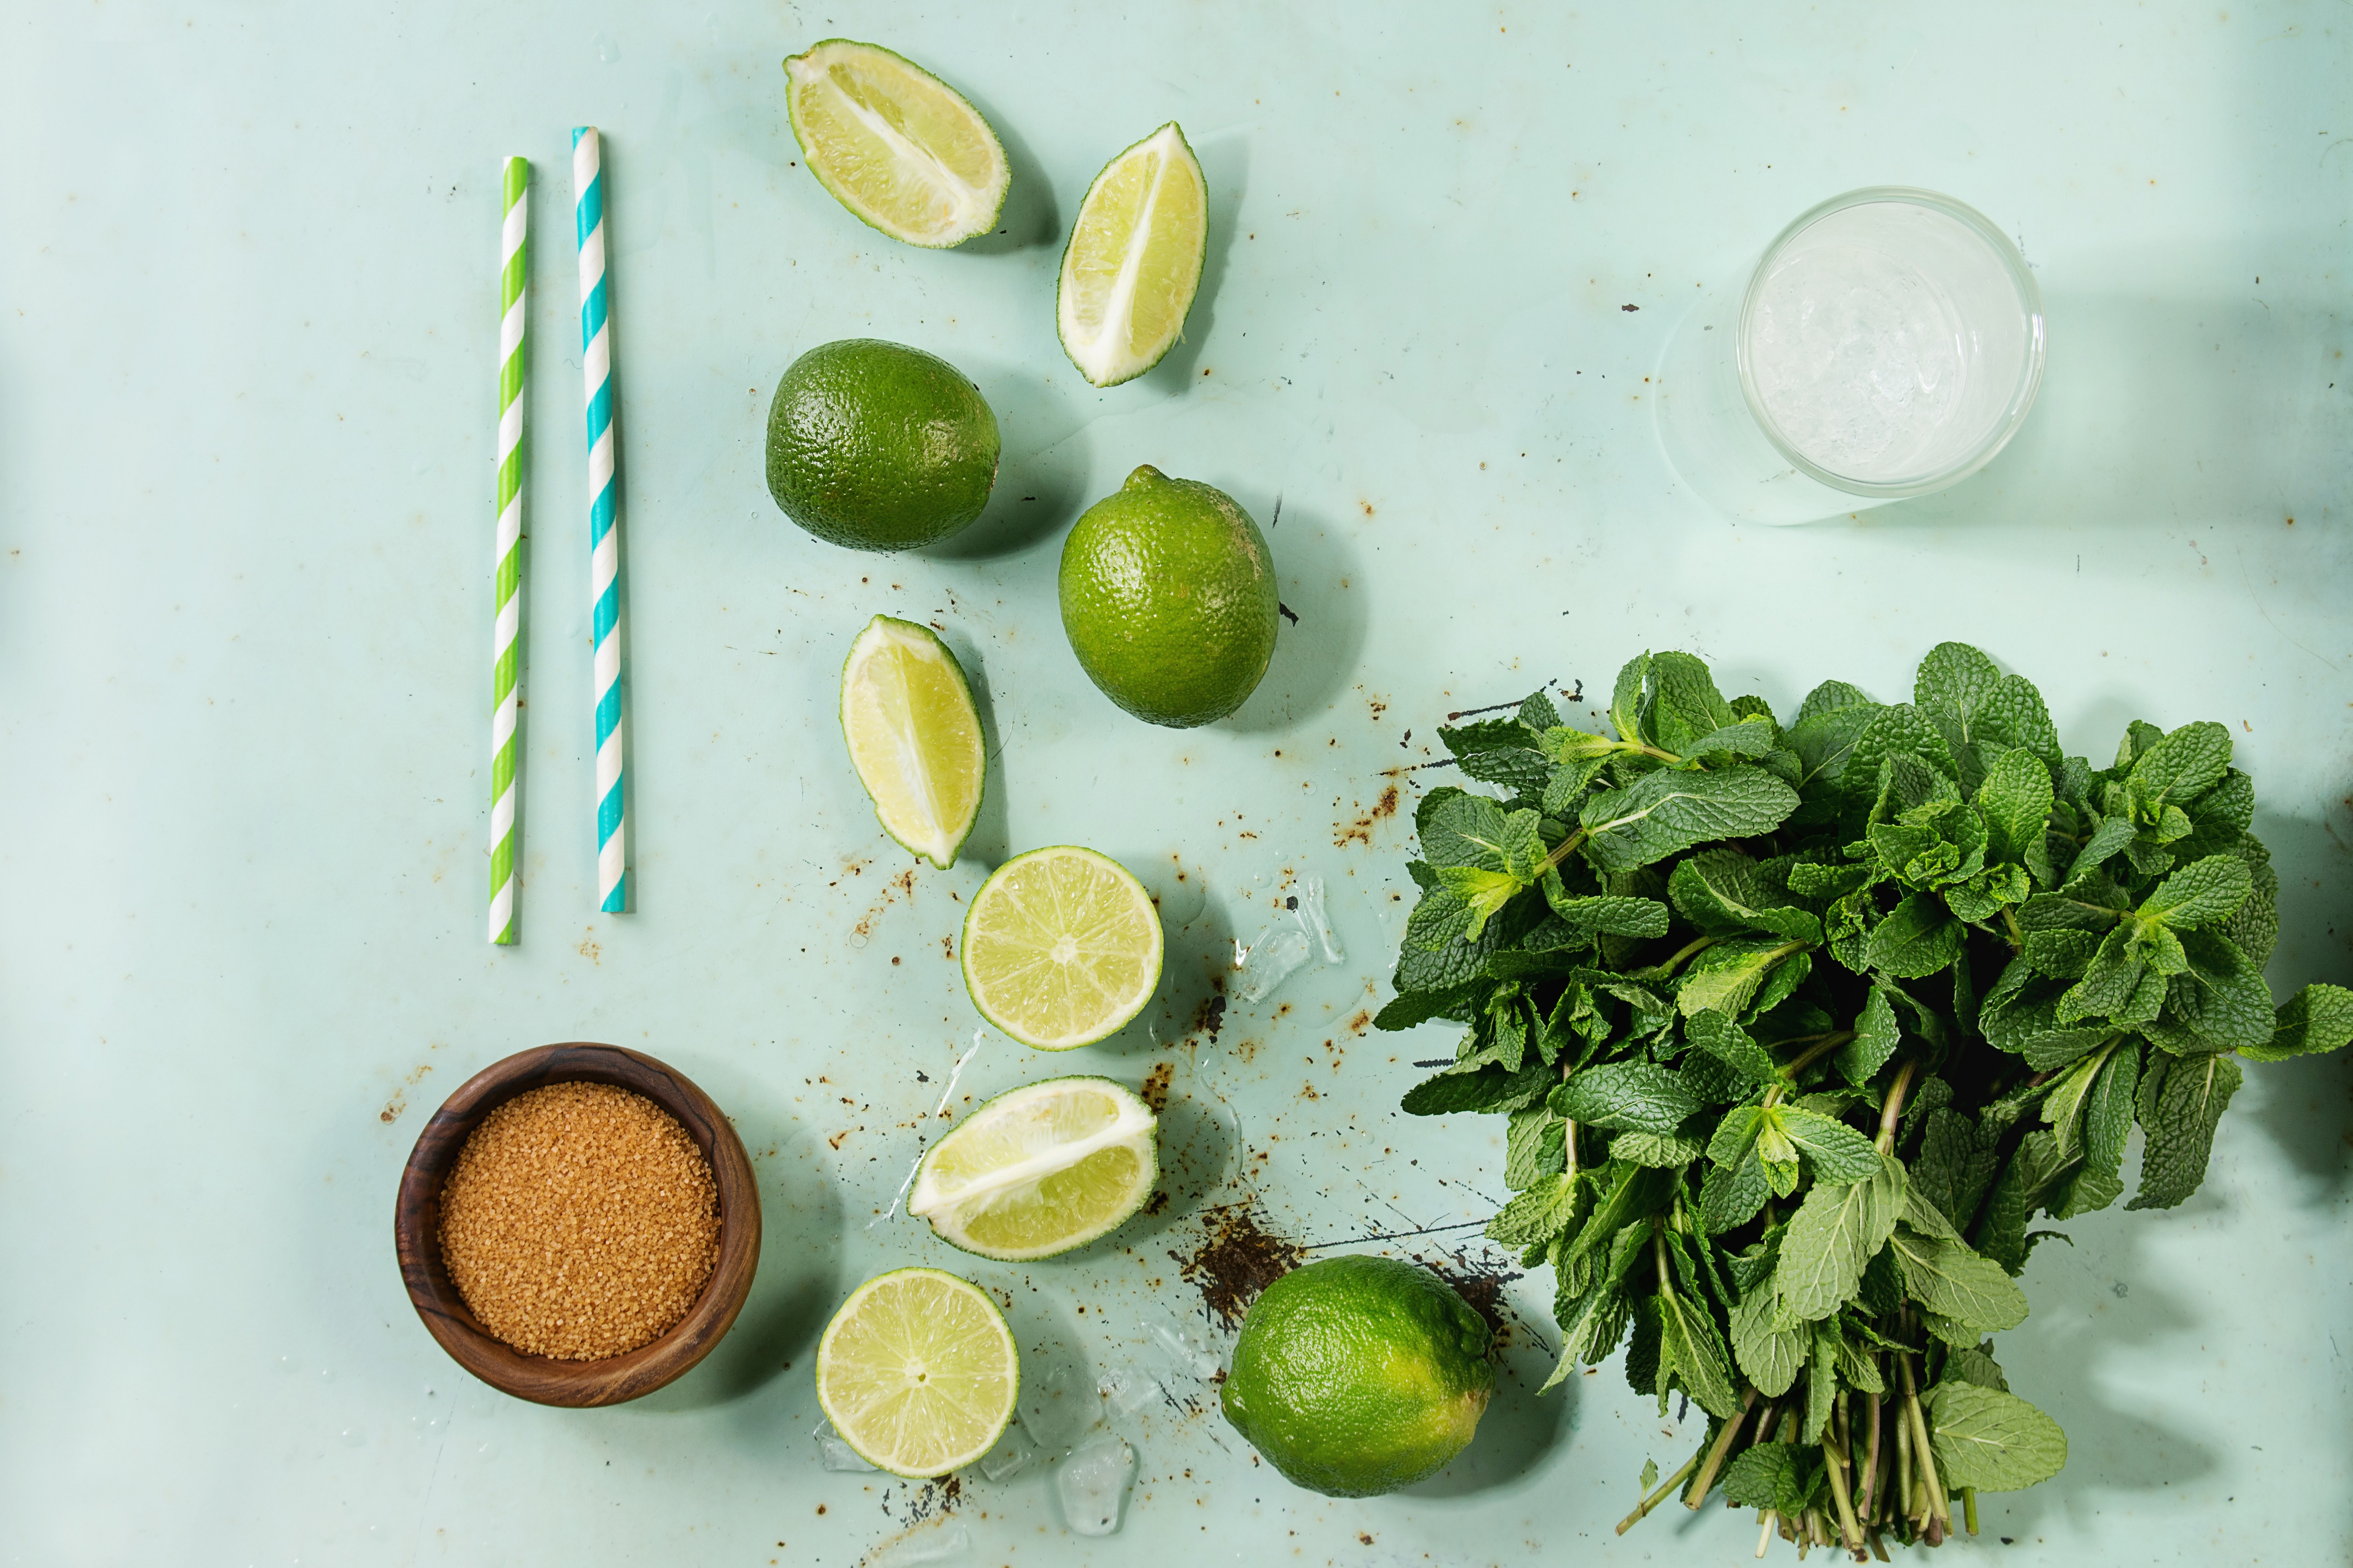 Ingredients for making mojito cocktail Bundle of fresh mint, limes, brown sugar, crashed ice cubes, glass of soda water, cocktail tubes over green pin up background Top view, space Food knolling